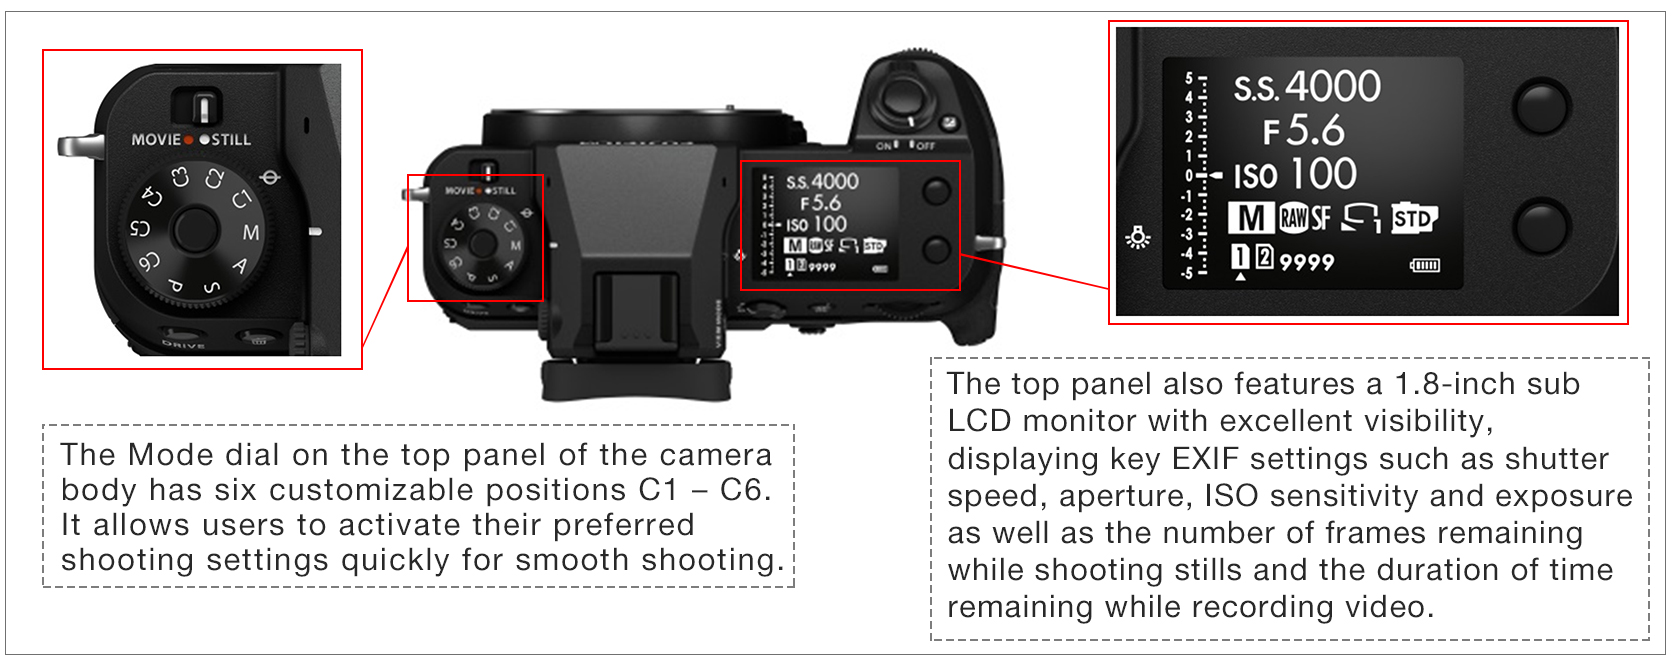 [Image]On the rear panel is a 3.2-inch main LCD monitor with approximately 100% coverage. It can tilt in three directions to facilitate high- and low-angle shooting, for which the use of the electronic viewfinder (EVF) is difficult.